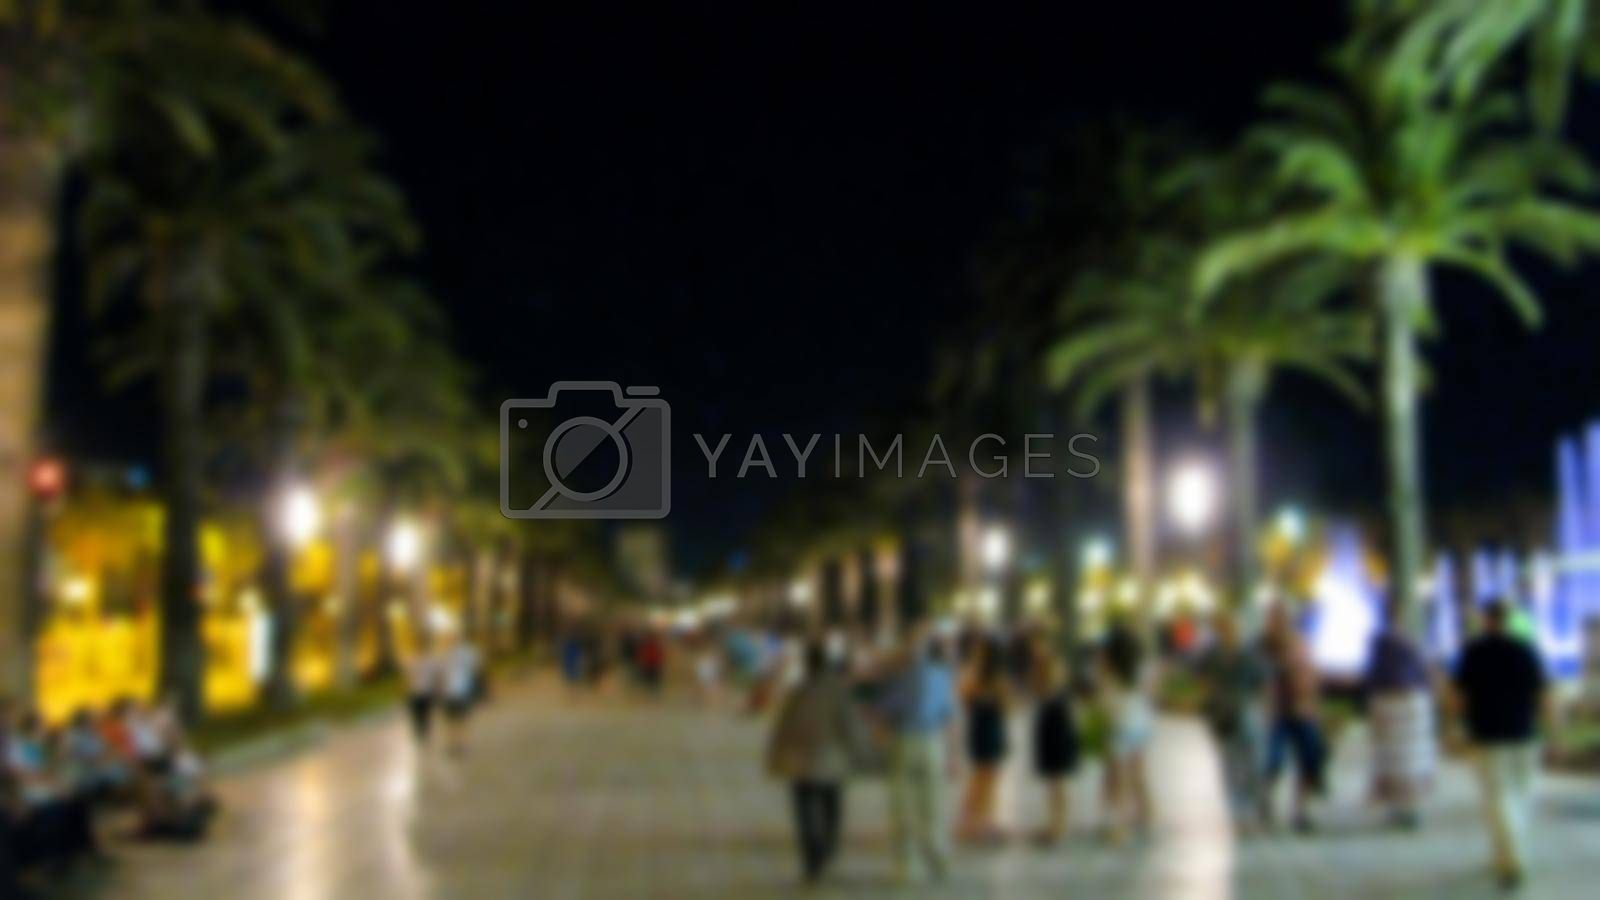 Creative evening city landscape. The theme of creative abstract background with blur and bokeh effect for the background.